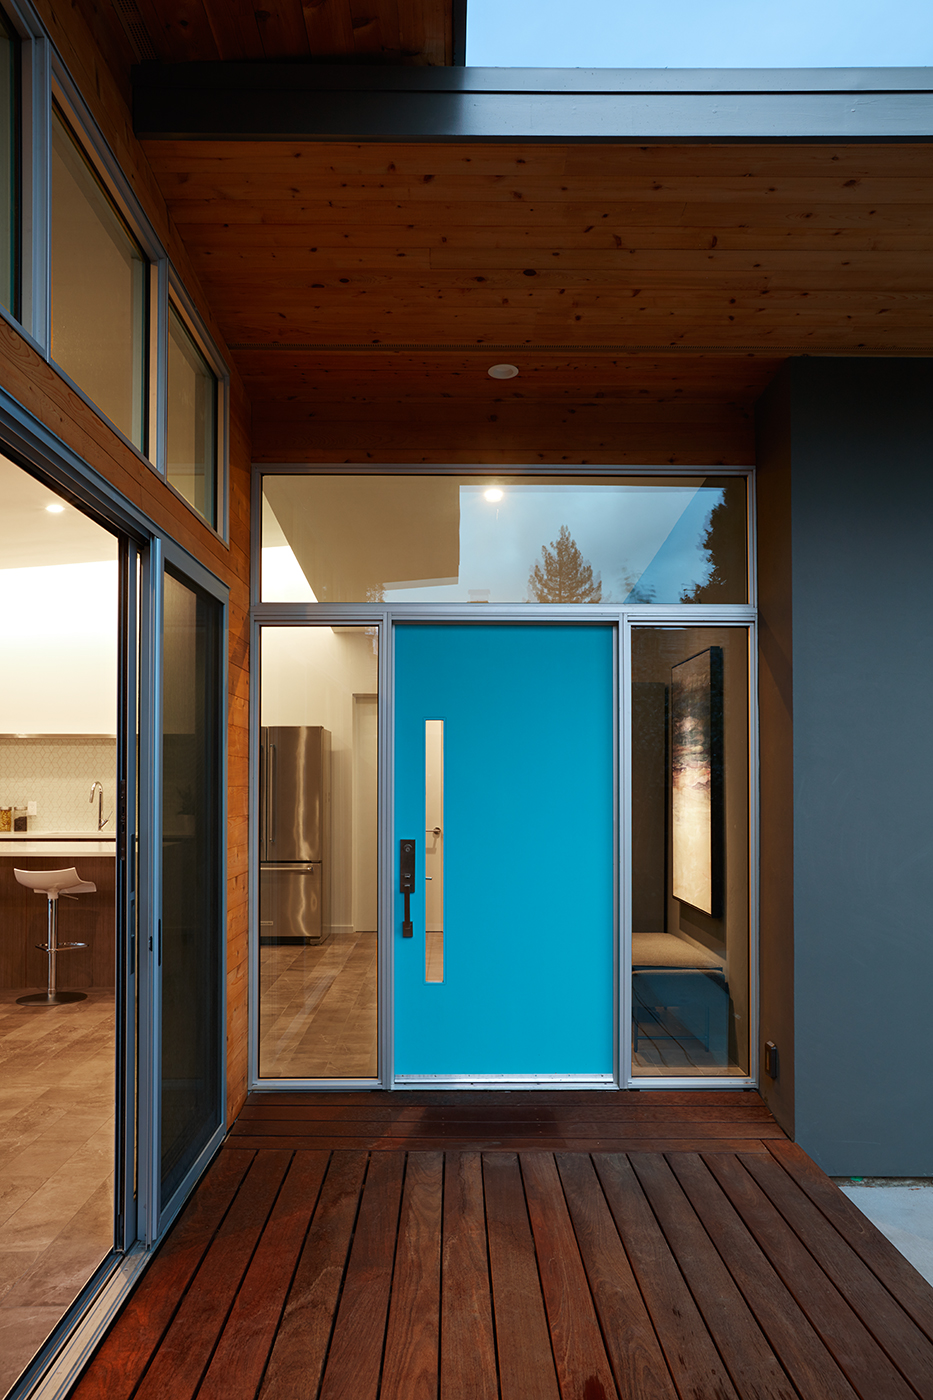 A Bright Blue Front Door for this Mid Century Modern Home Remodel in California by Klopf Architecture